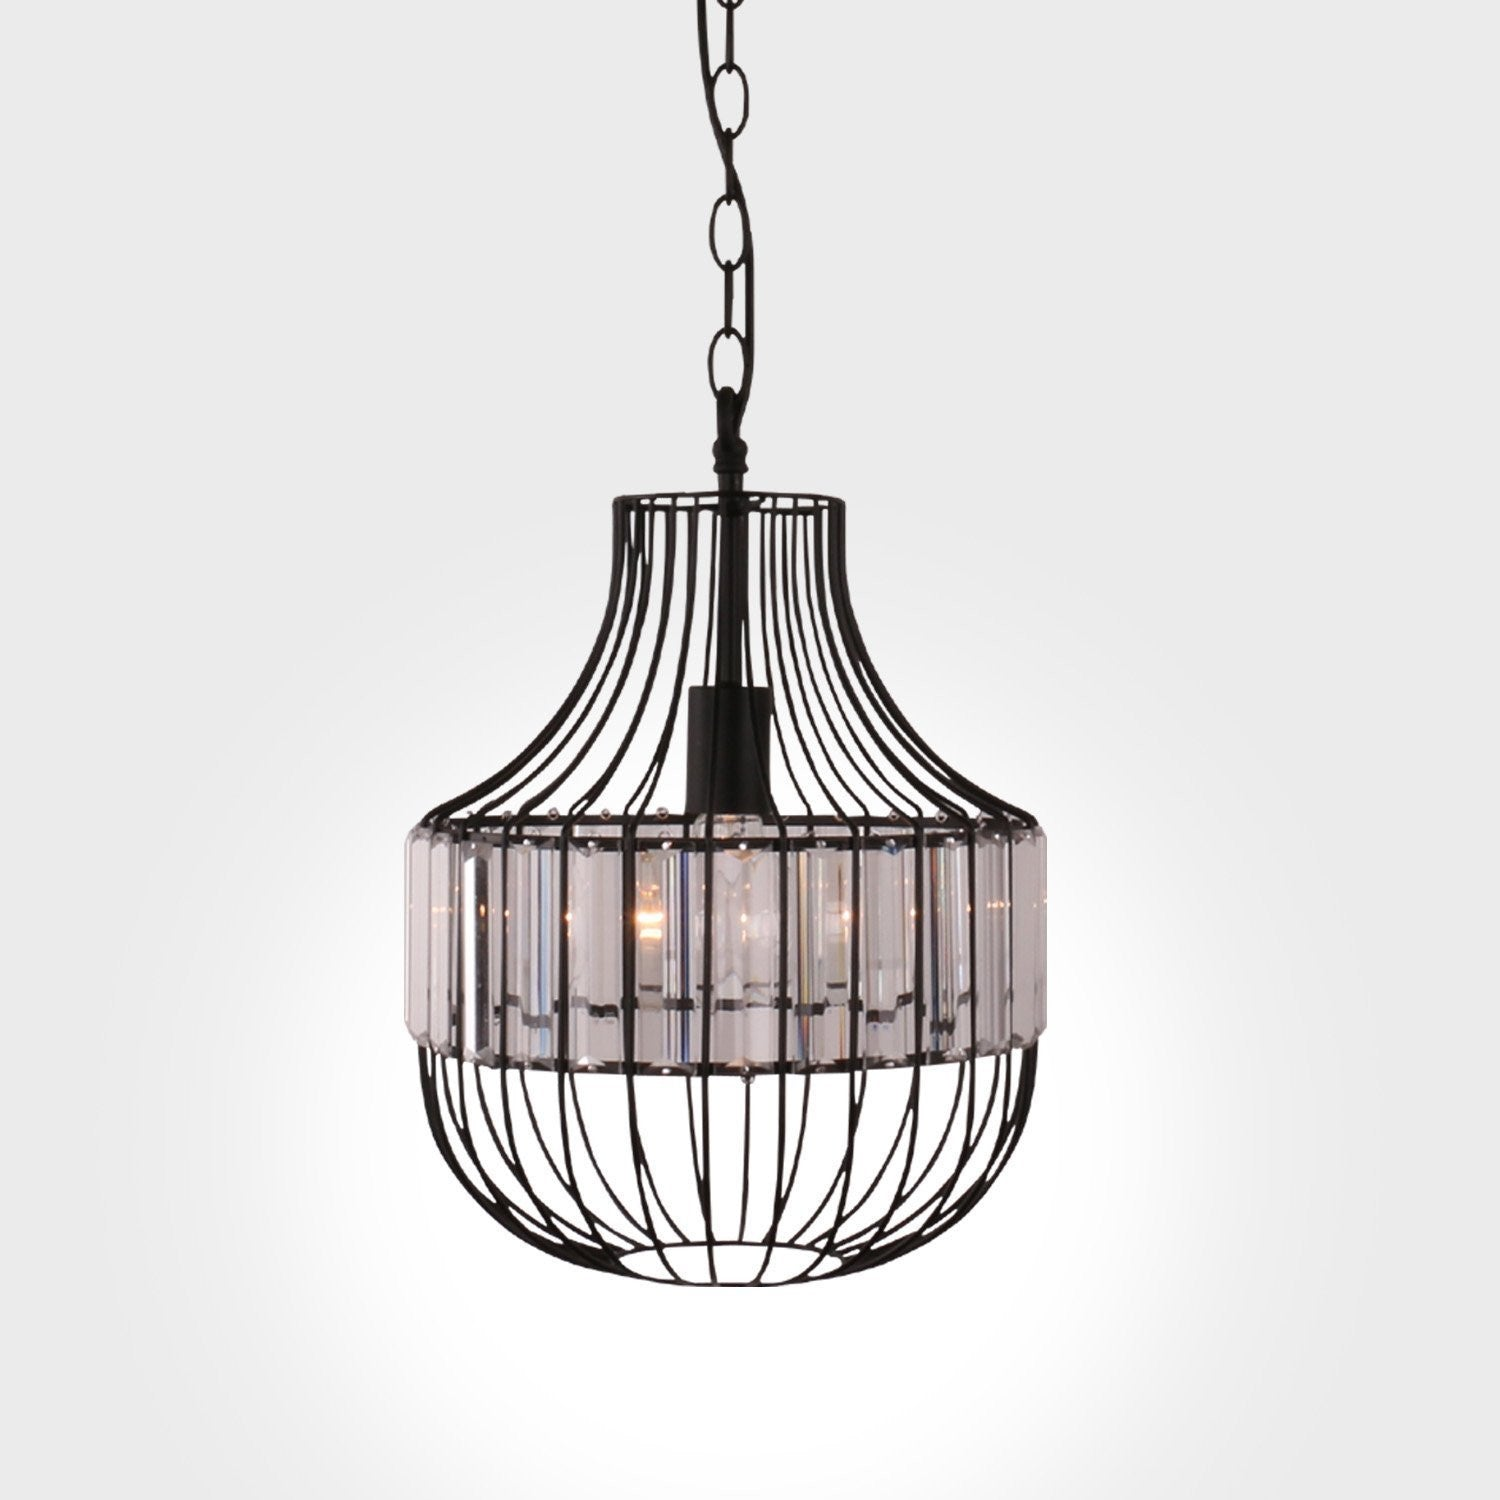 Unitary Brand Antique Black Metal Crystal Lantern Cage Dining Room Ceiling Light Vintage Retro On Wiring Led Lights Pendant With 1 E26 Bulb Socket 40w Painted Finish